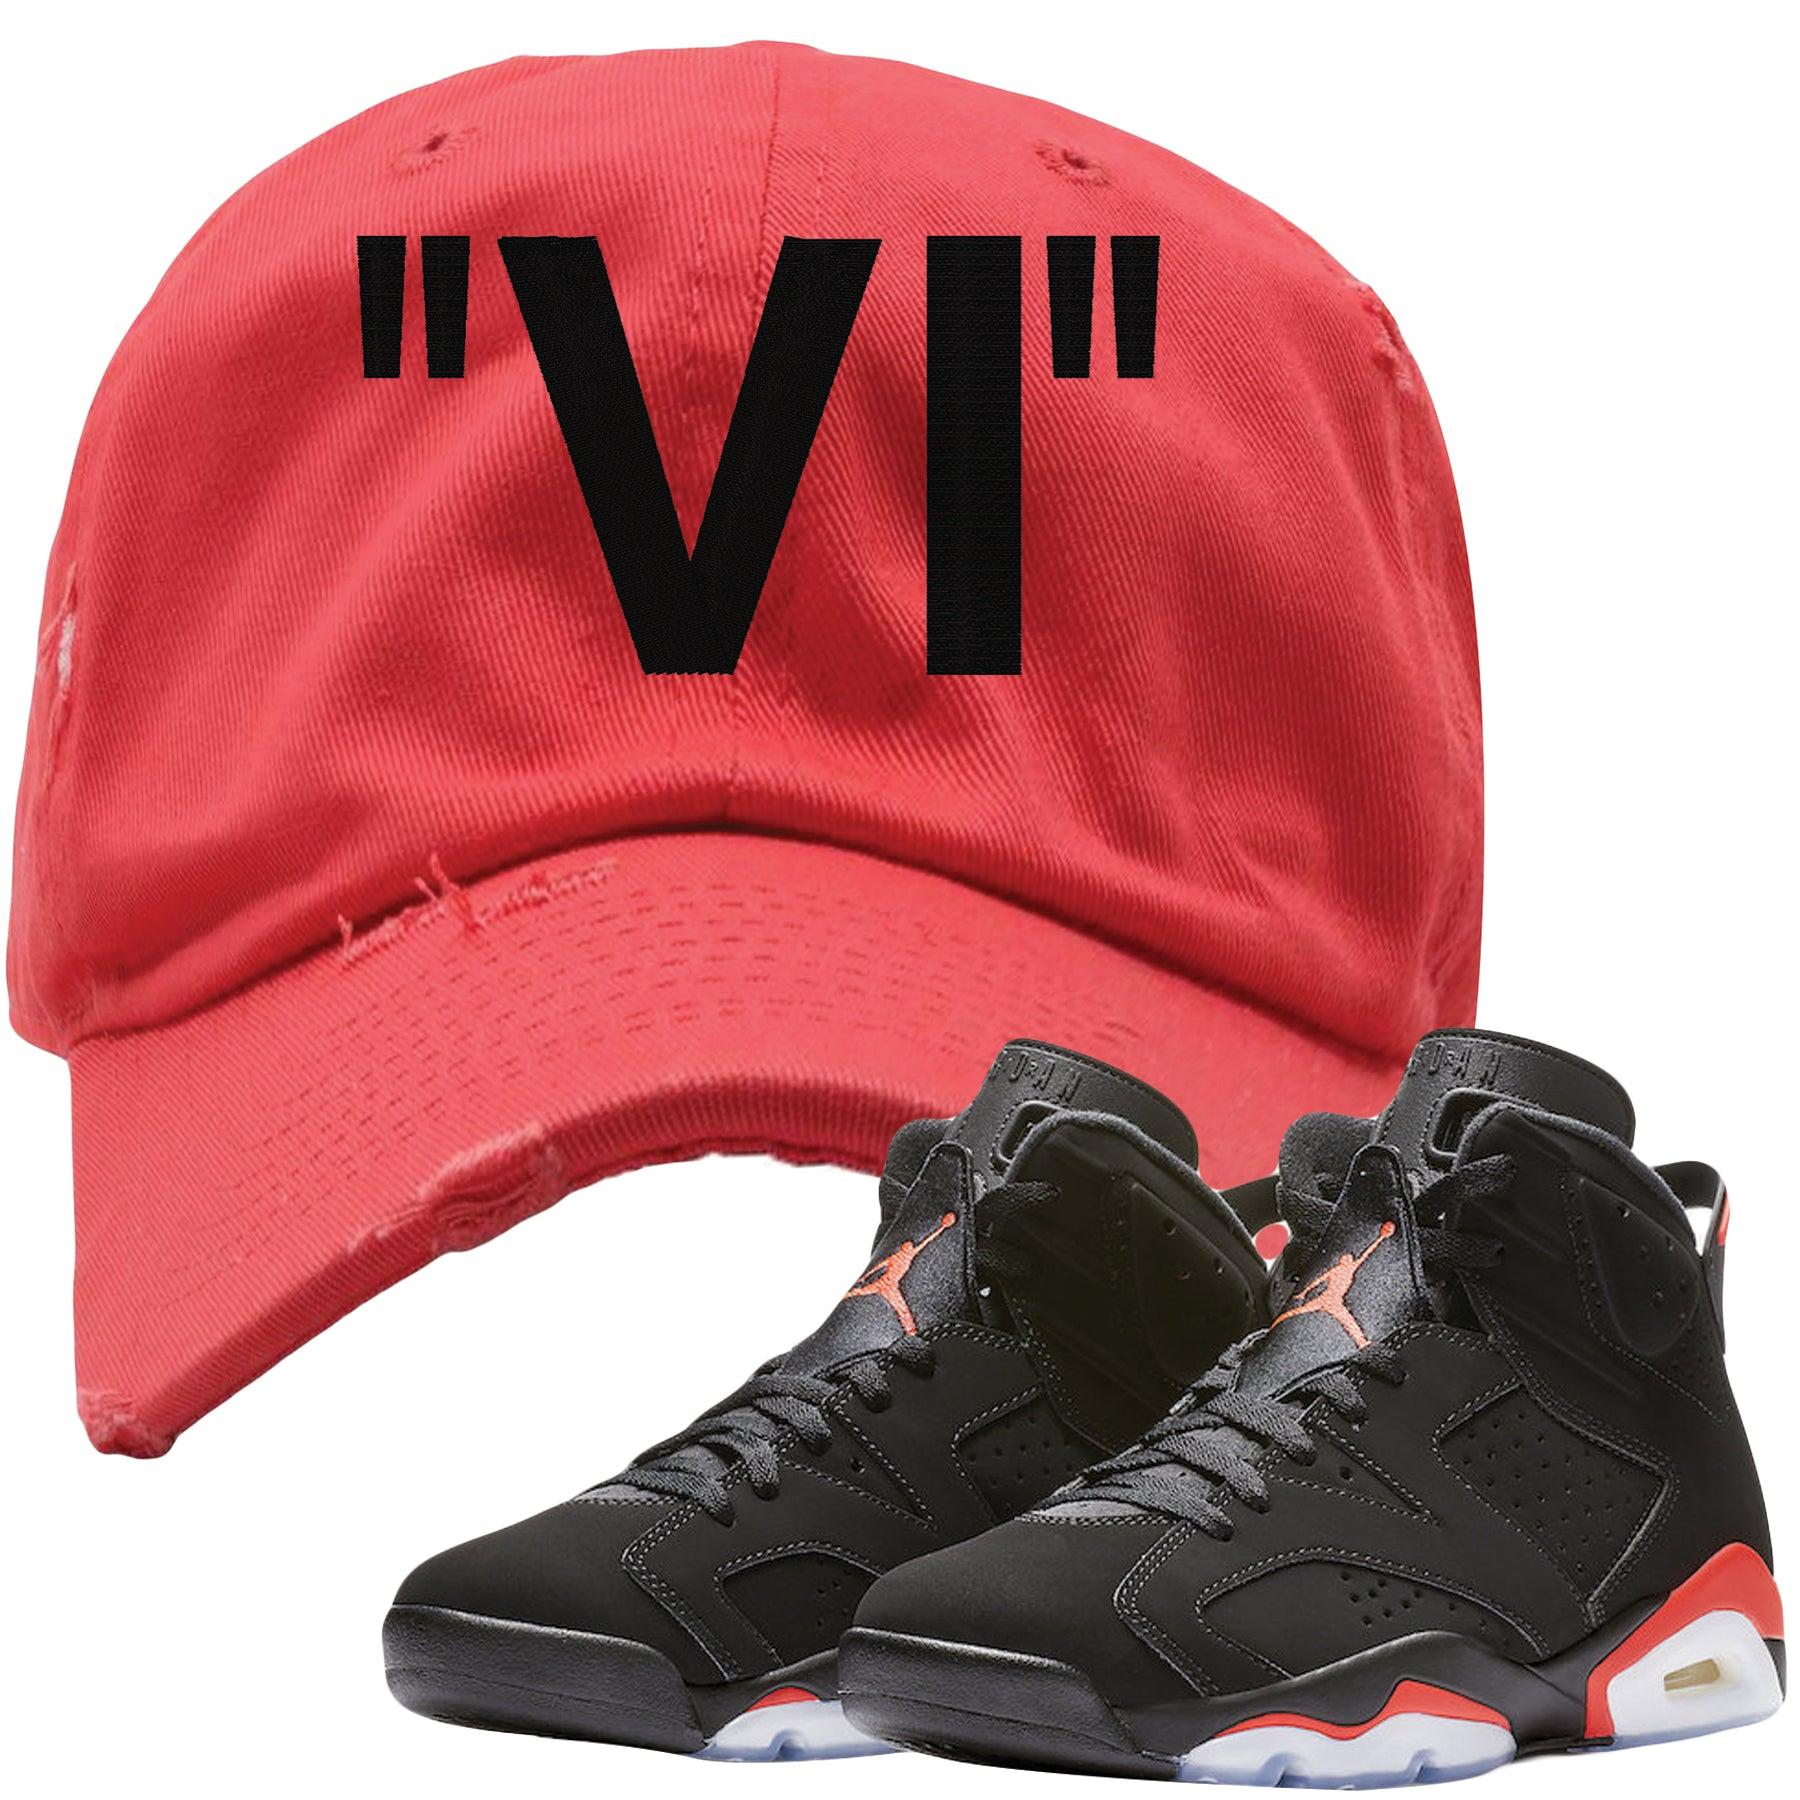 683843ed24e2 The Jordan 6 Infrared Distressed Dad Hat is custom designed to perfectly  match the retro Jordan